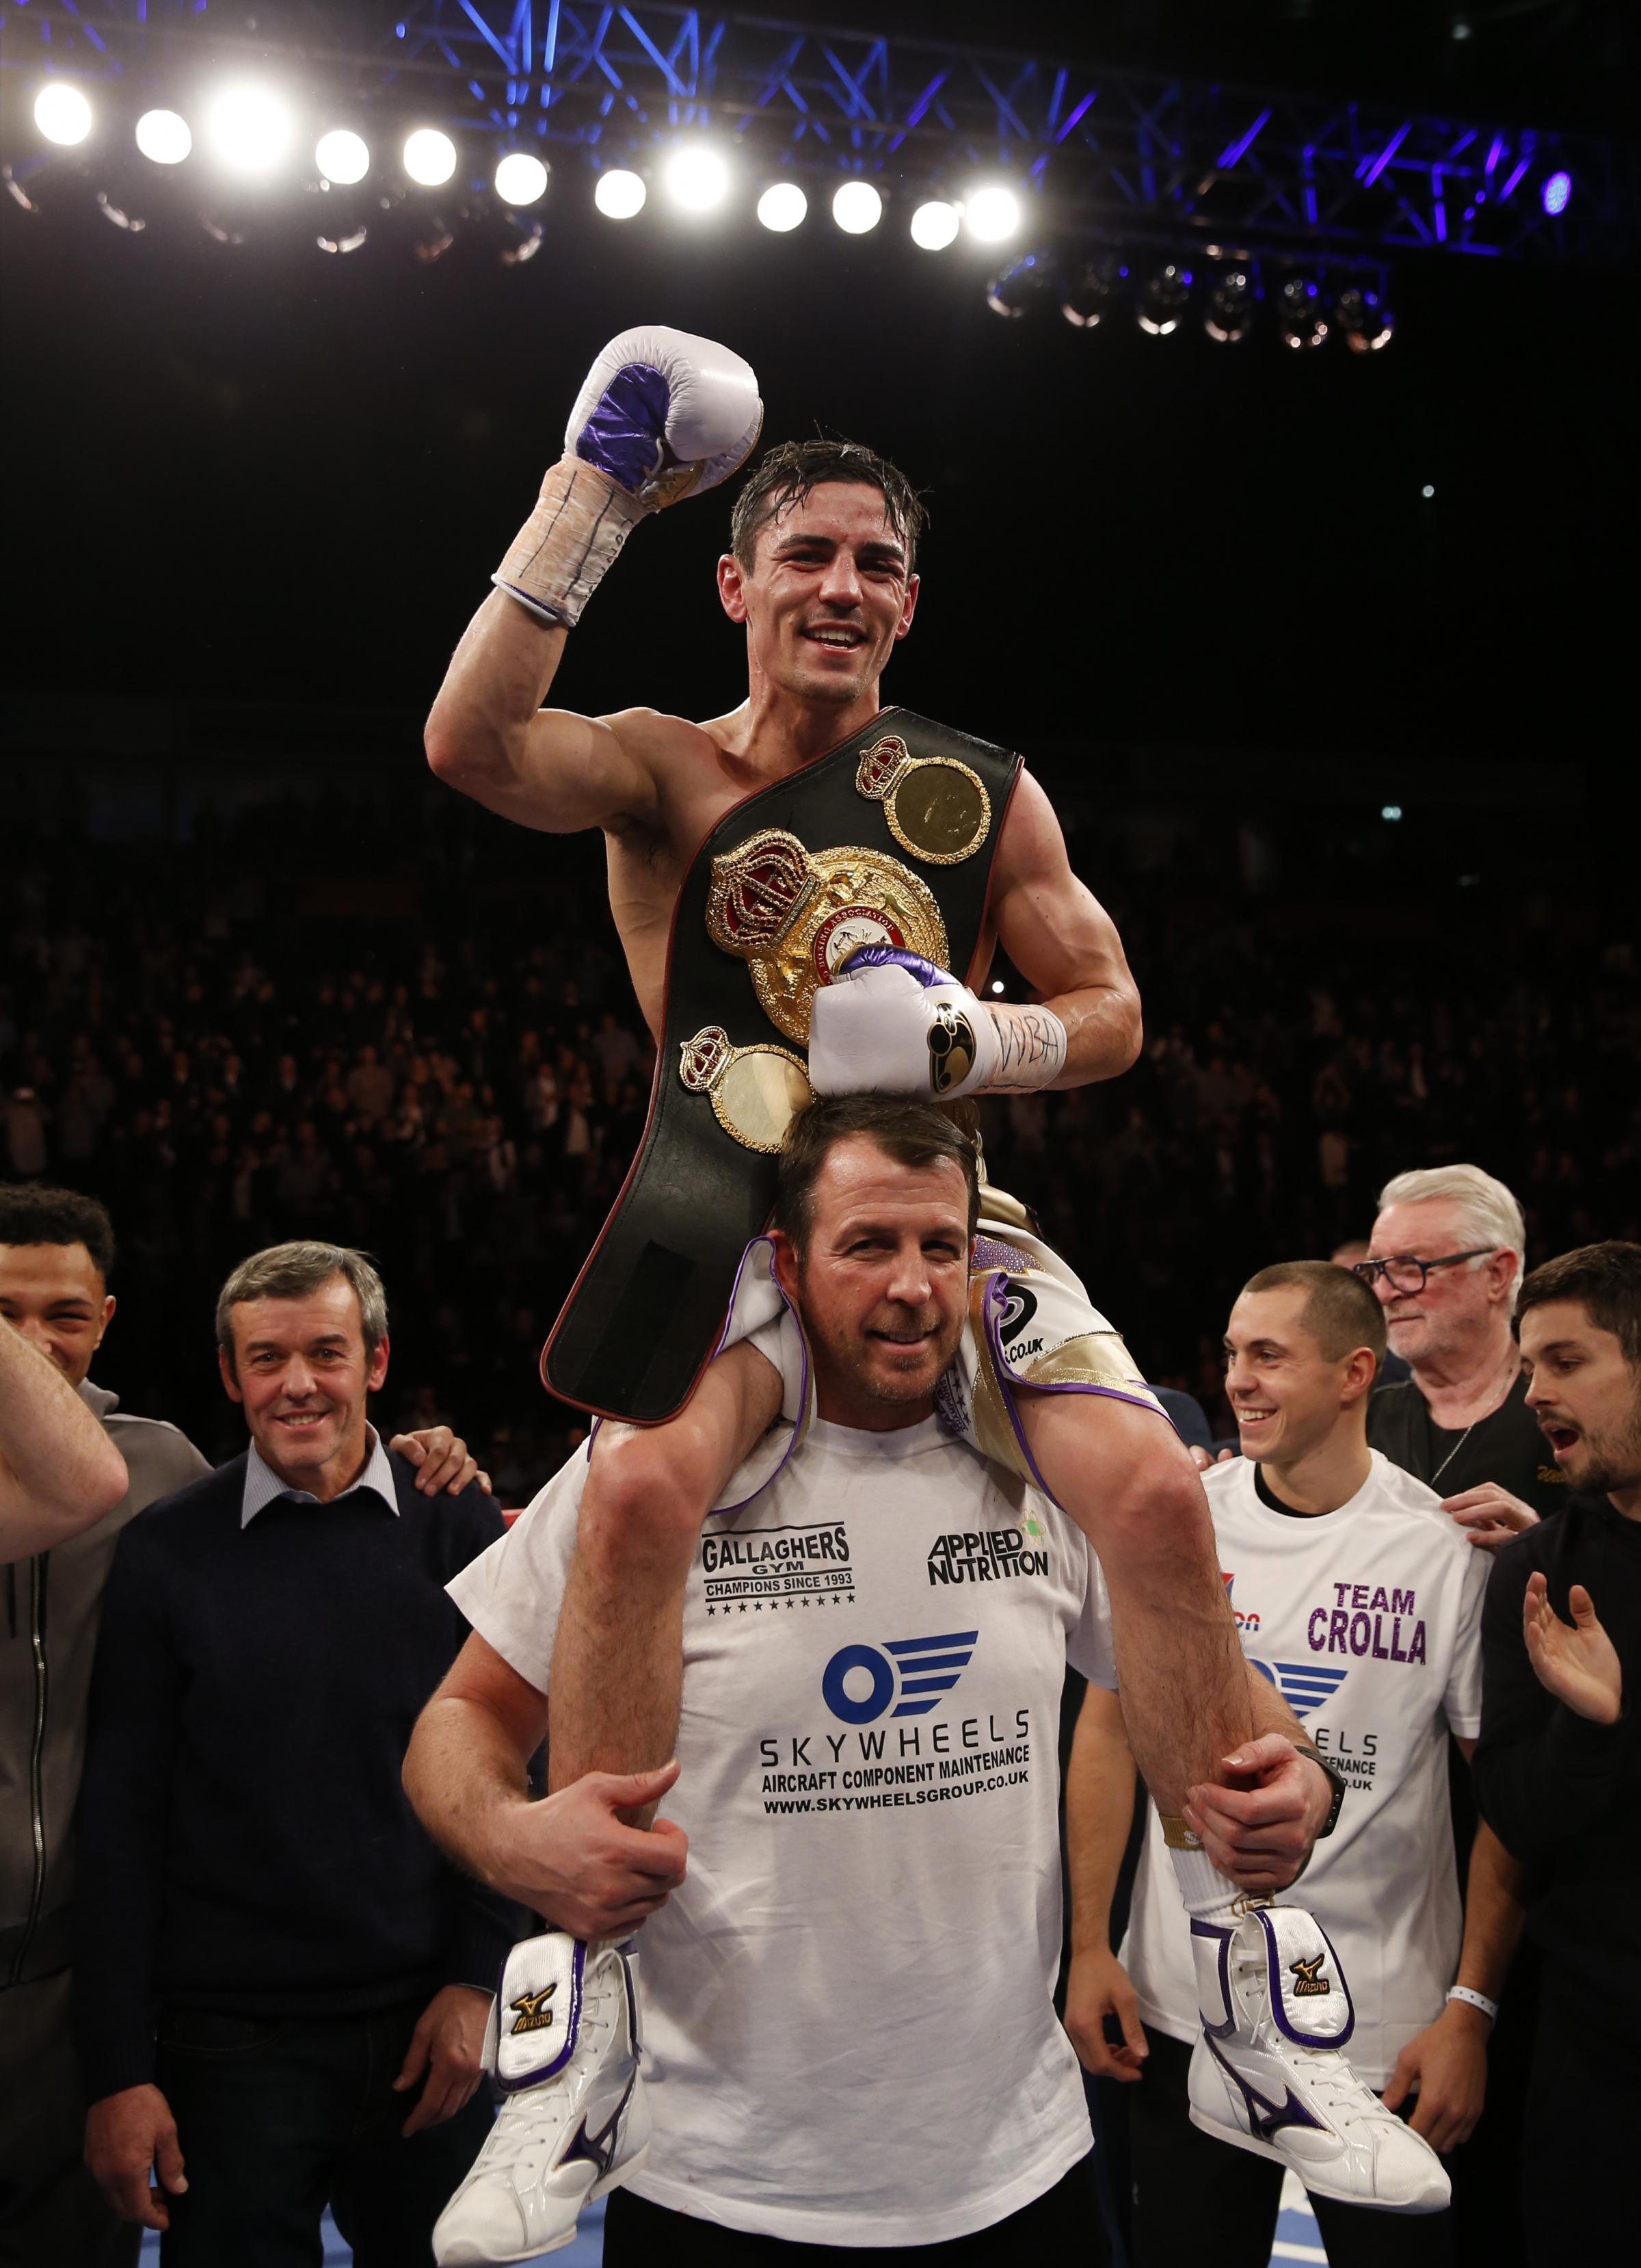 Anthony Crolla celebrates victory over Darleys Perez on the shoulders of trainer Joe Gallagher during the WBA World lightweight title at Manchester Arena